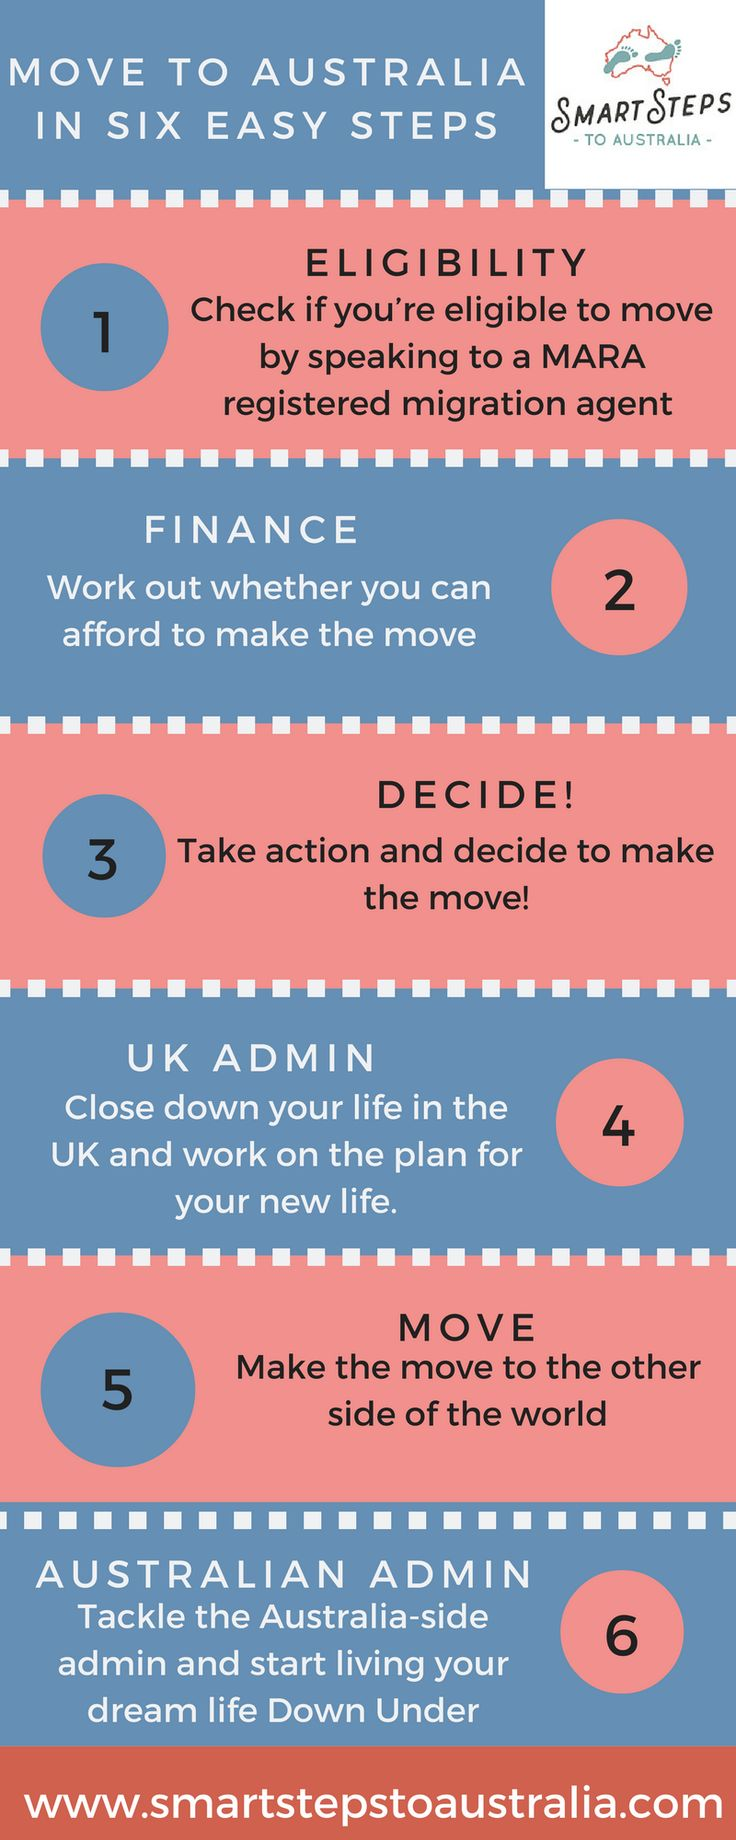 Emigrate to Australia in six easy steps. Moving to Australia doesn't need to be overly complicated. You can start a new life Down Under in just six easy steps.